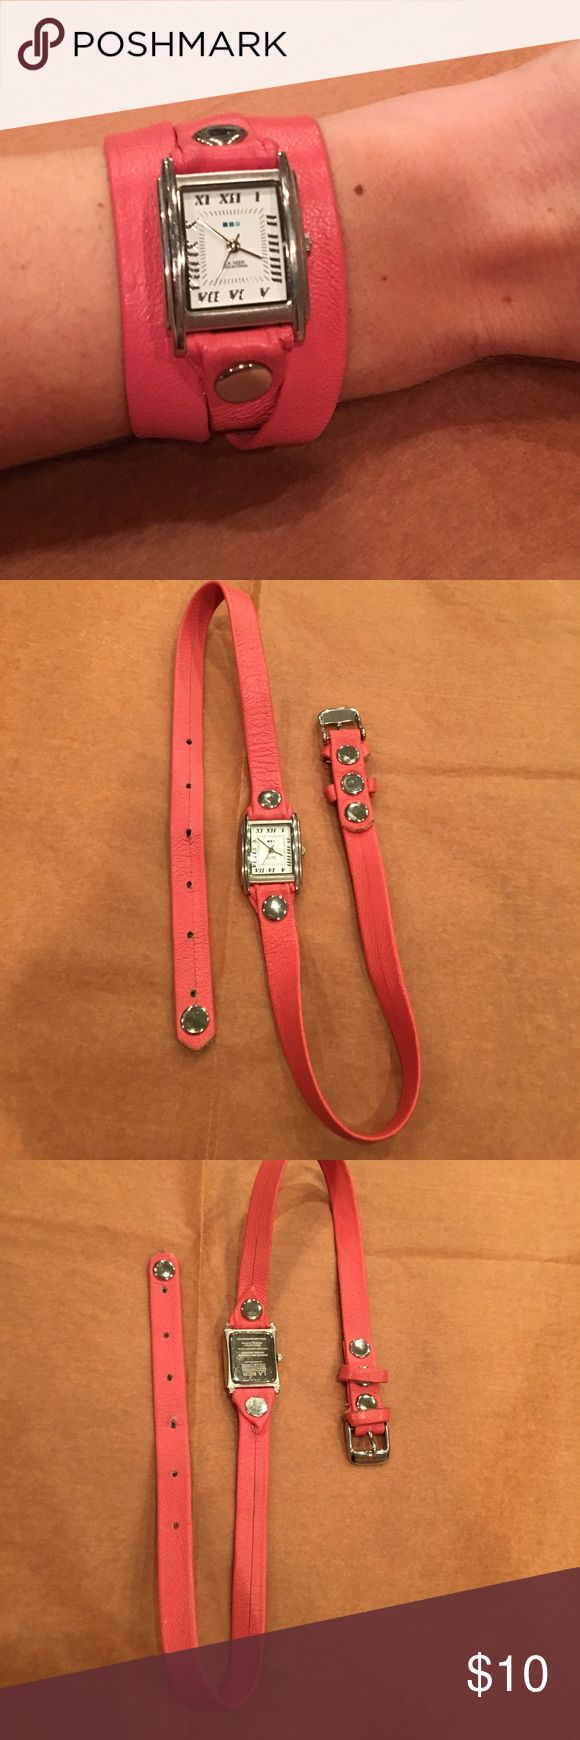 La Mer Collection Leather Wrap Watch Needs Battery Coral colored leather wrap watch. Pre-loved and worn a handful of times. See pics for closer detail. Needs battery replaced!!!! La Mer Accessories Watches